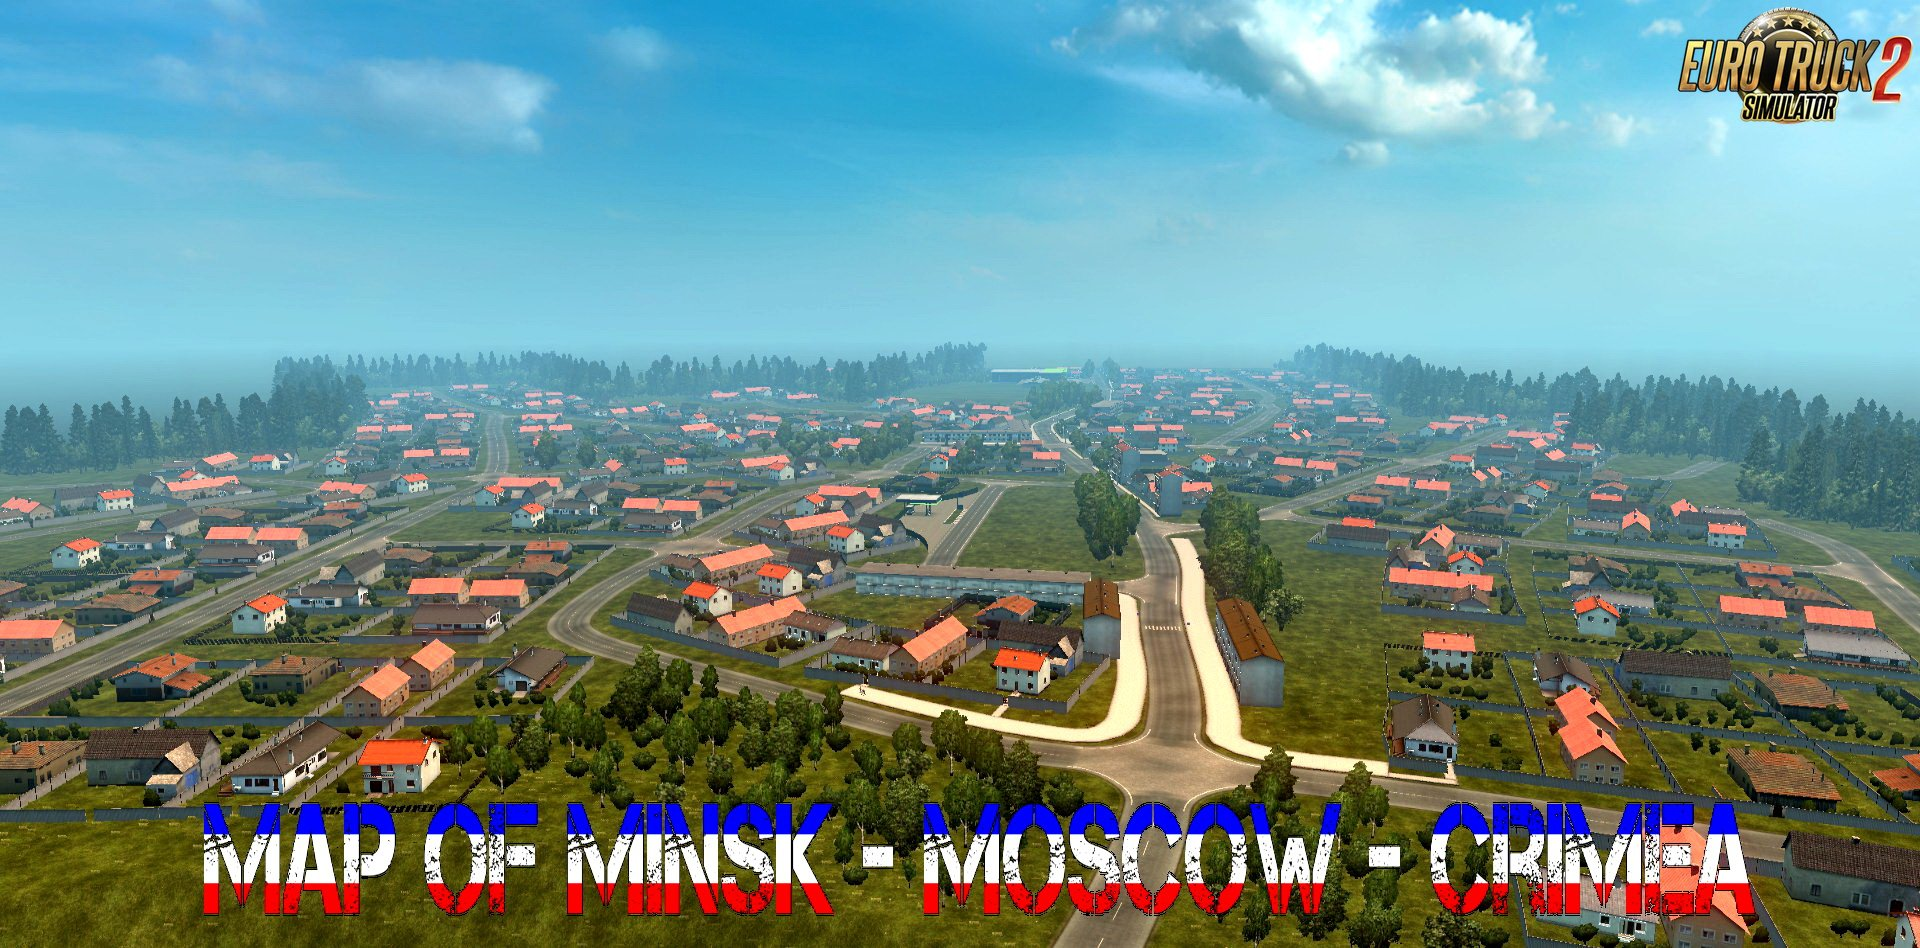 Map of Minsk - Moscow - Crimea v1.0 (Demo 2018) (1.30.x)